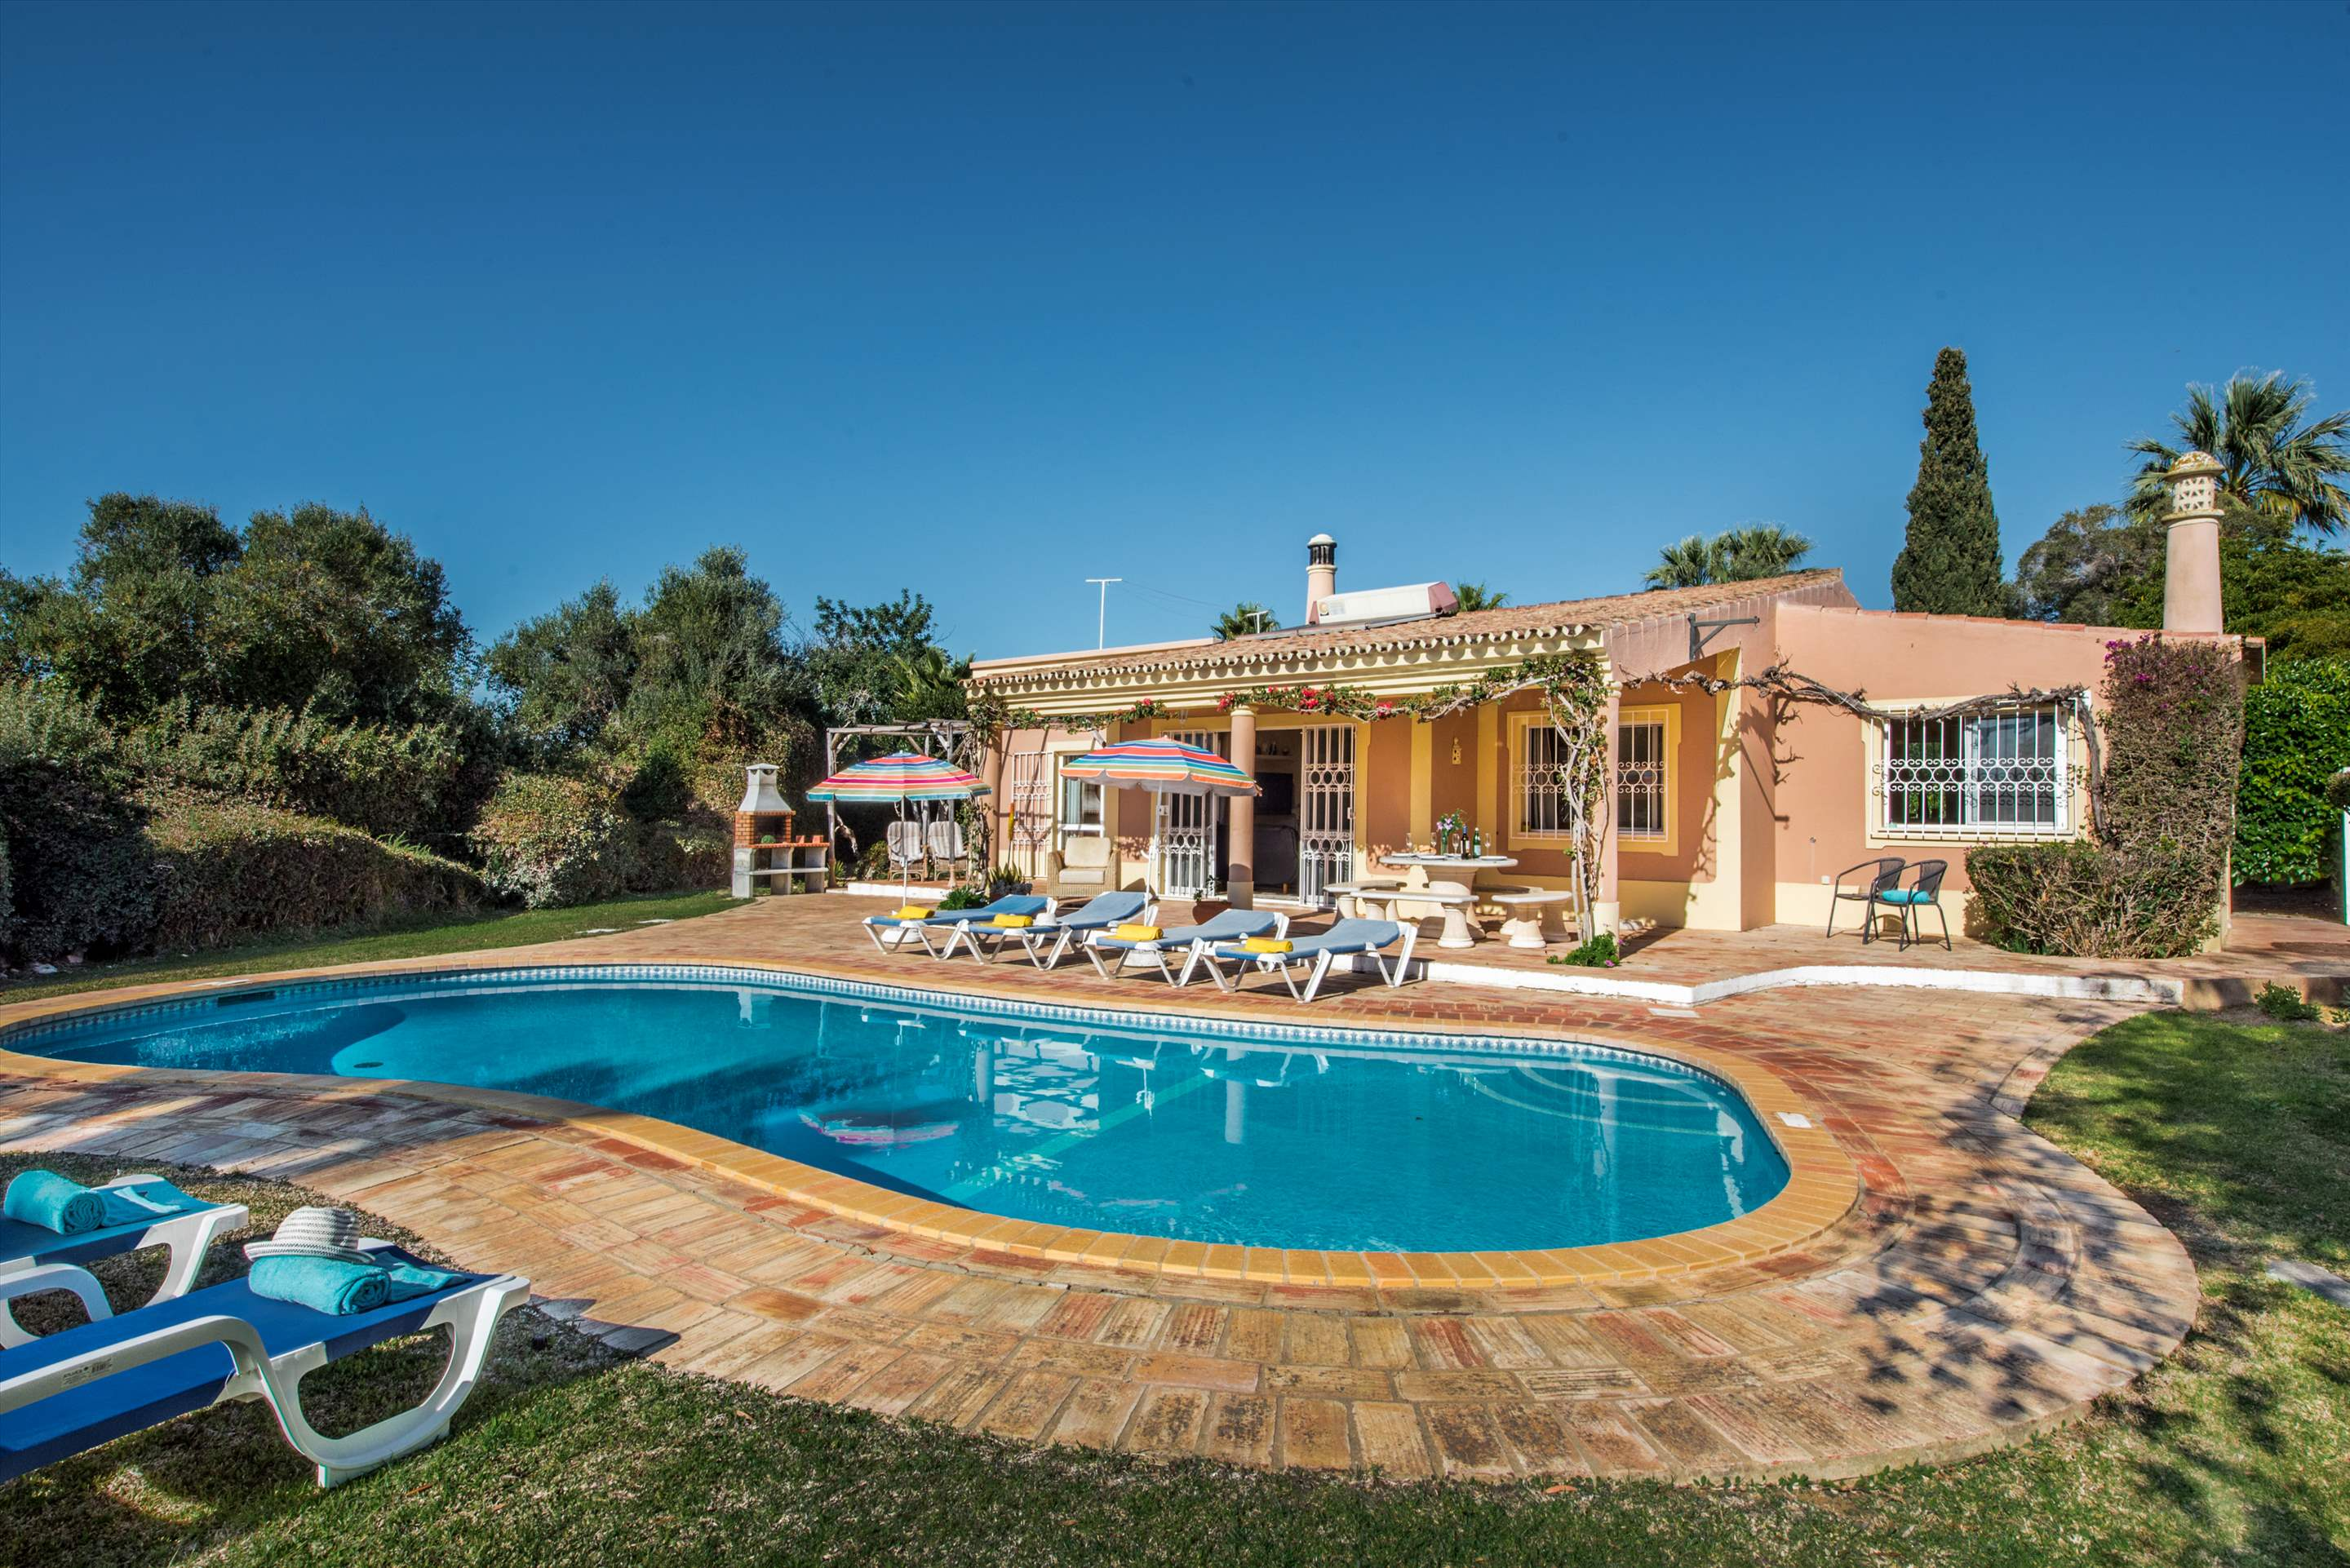 Villa Moinho, 3 bedroom villa in Gale, Vale da Parra and Guia, Algarve